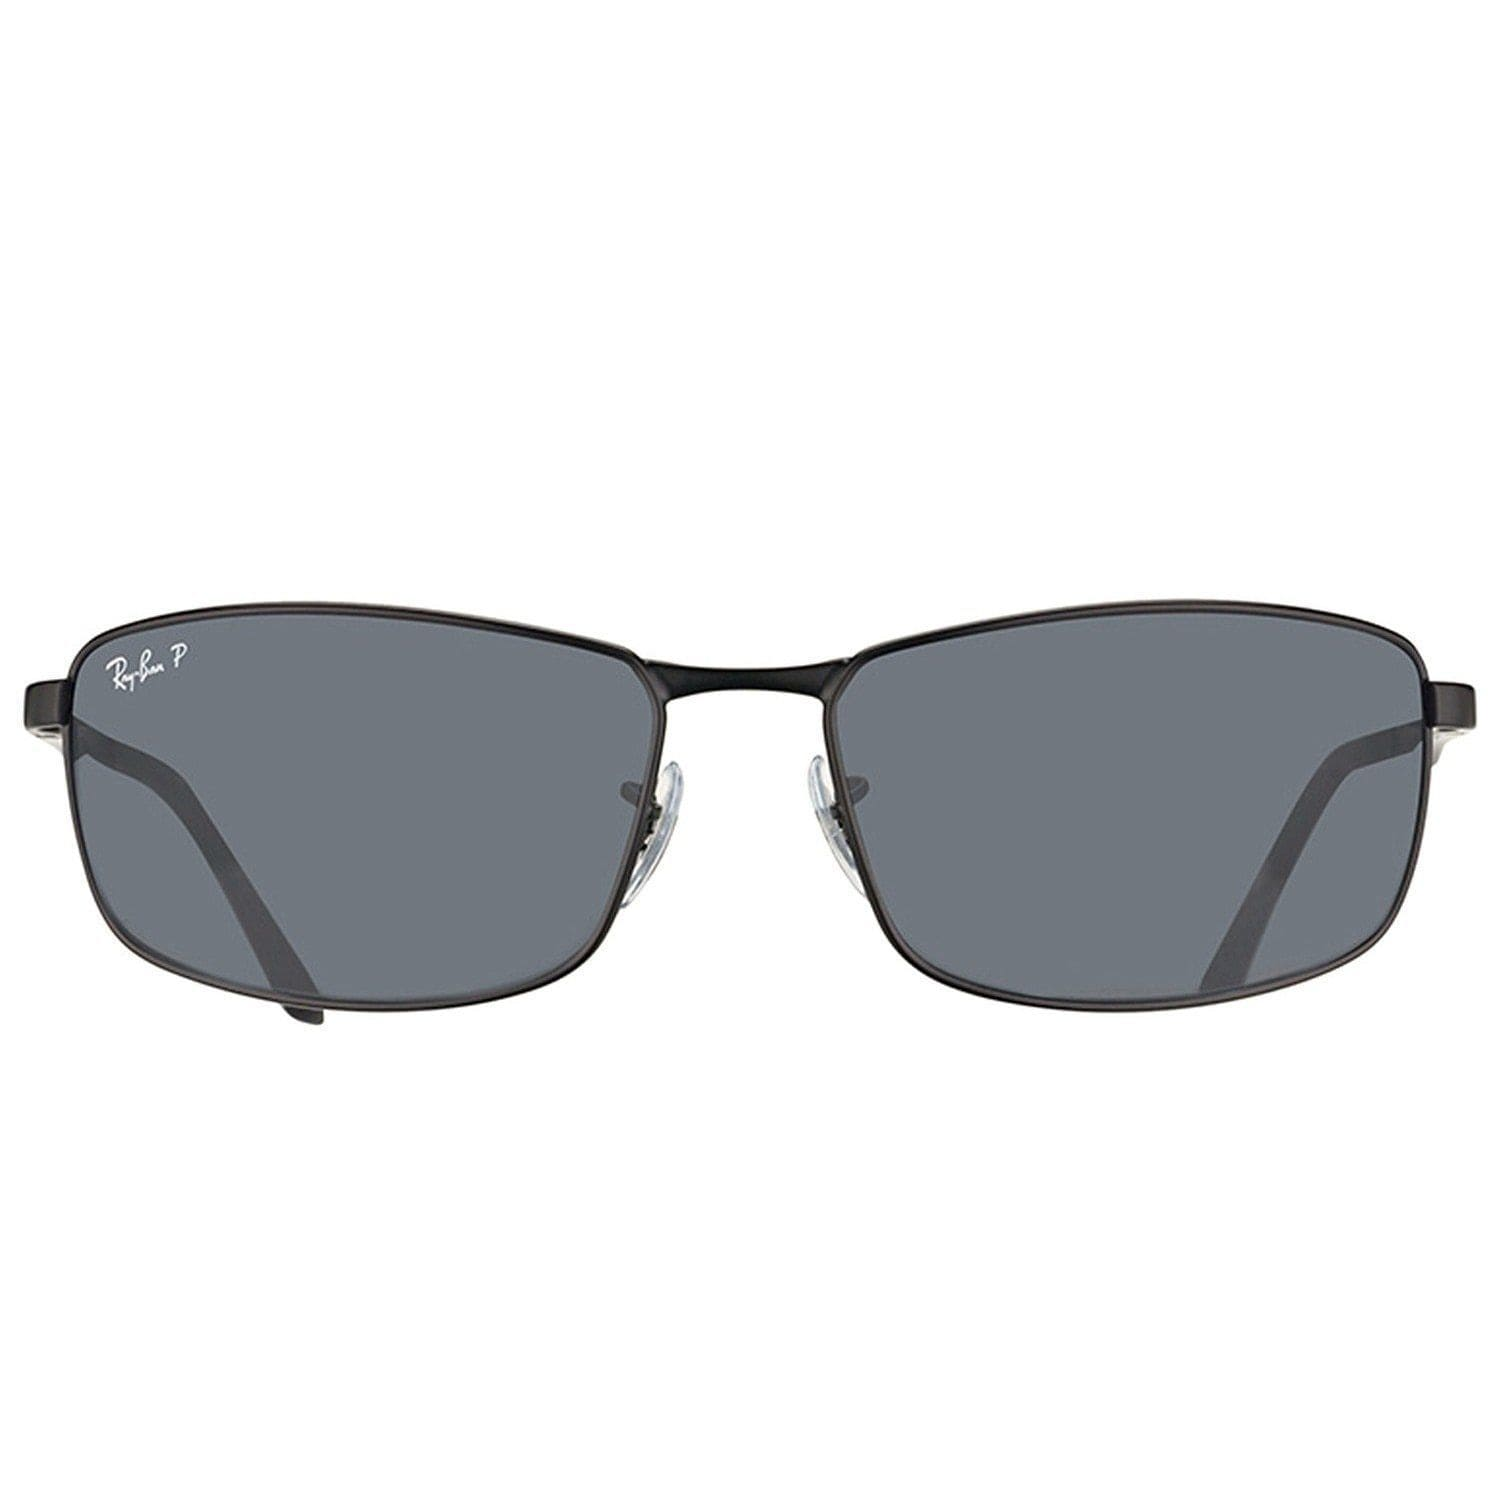 fb345ecc9f Shop Ray-Ban RB3498 006 81 Black Frame Polarized Grey Gradient 61mm Lens  Sunglasses - Ships To Canada - Overstock - 14328457